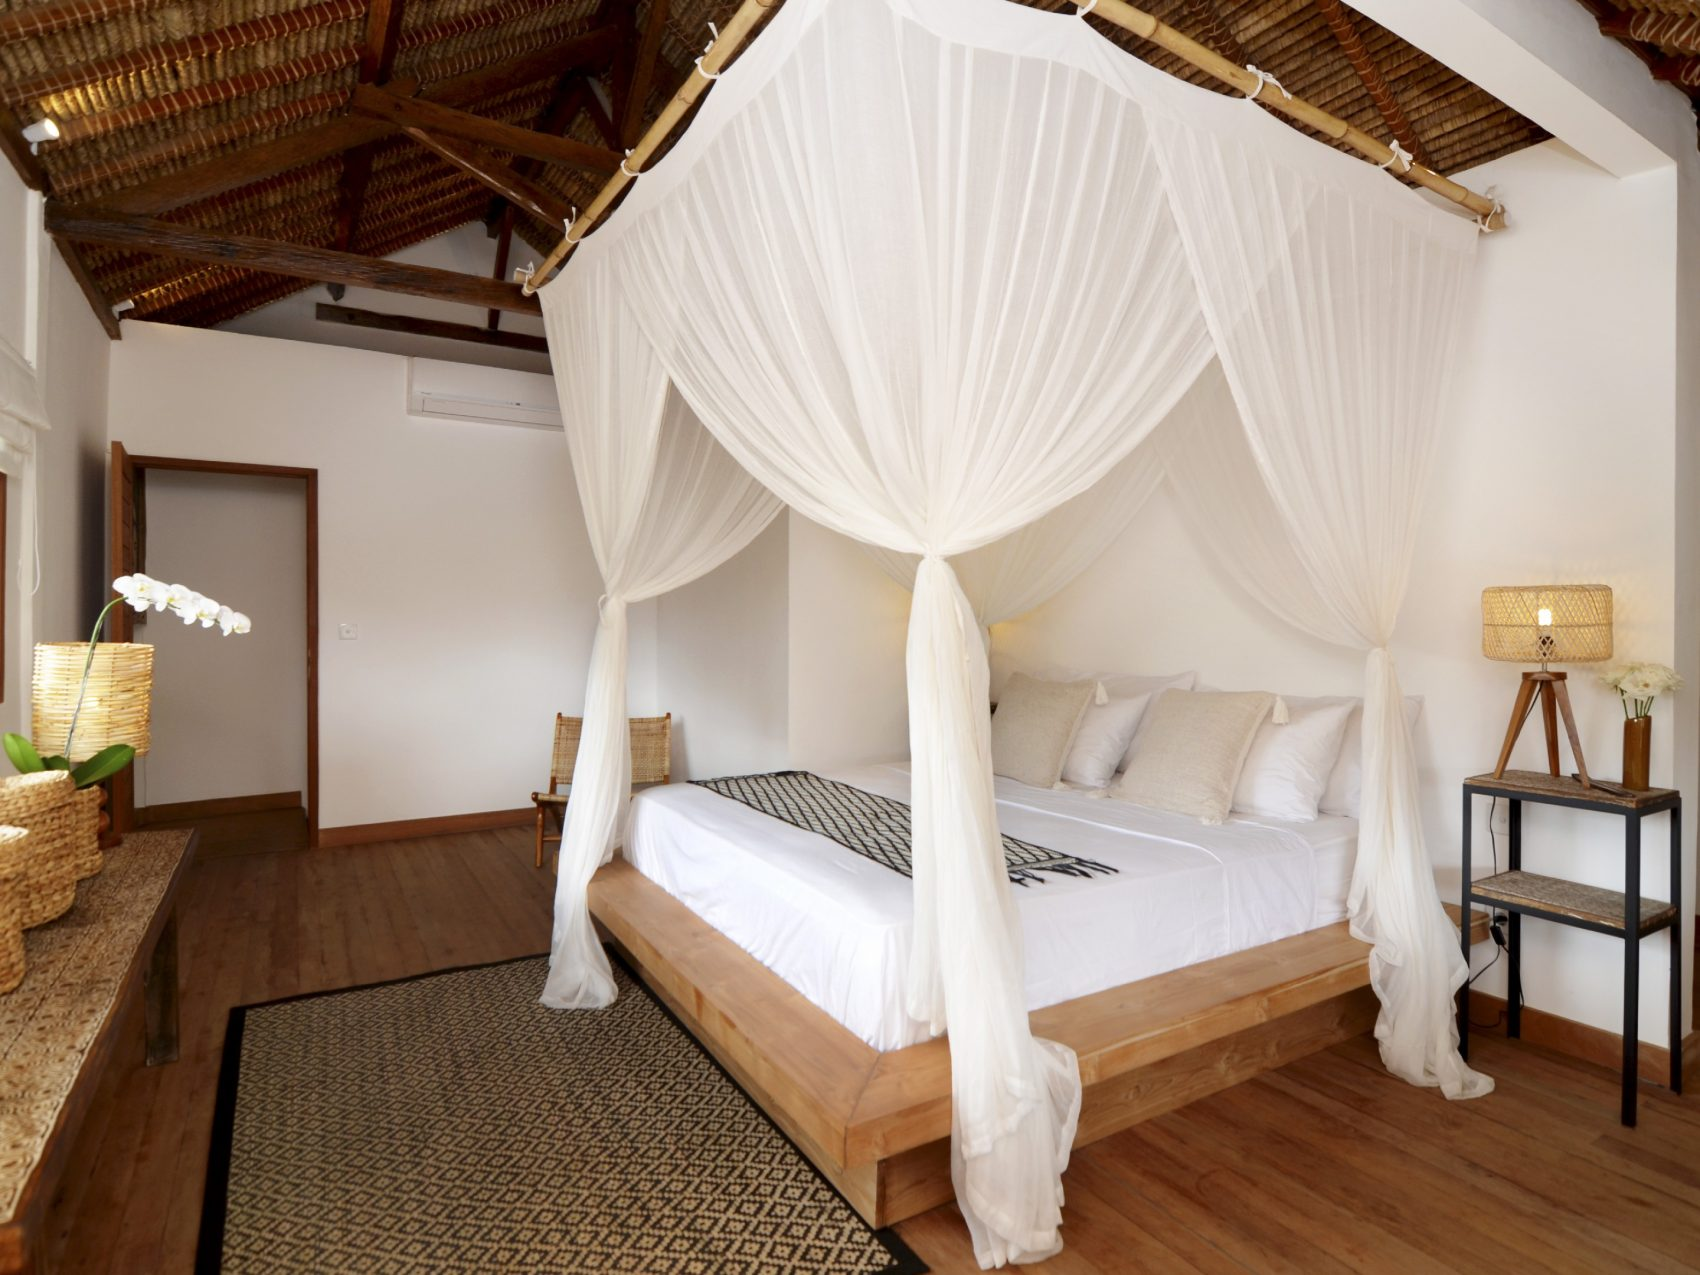 Bedroom in bali villa